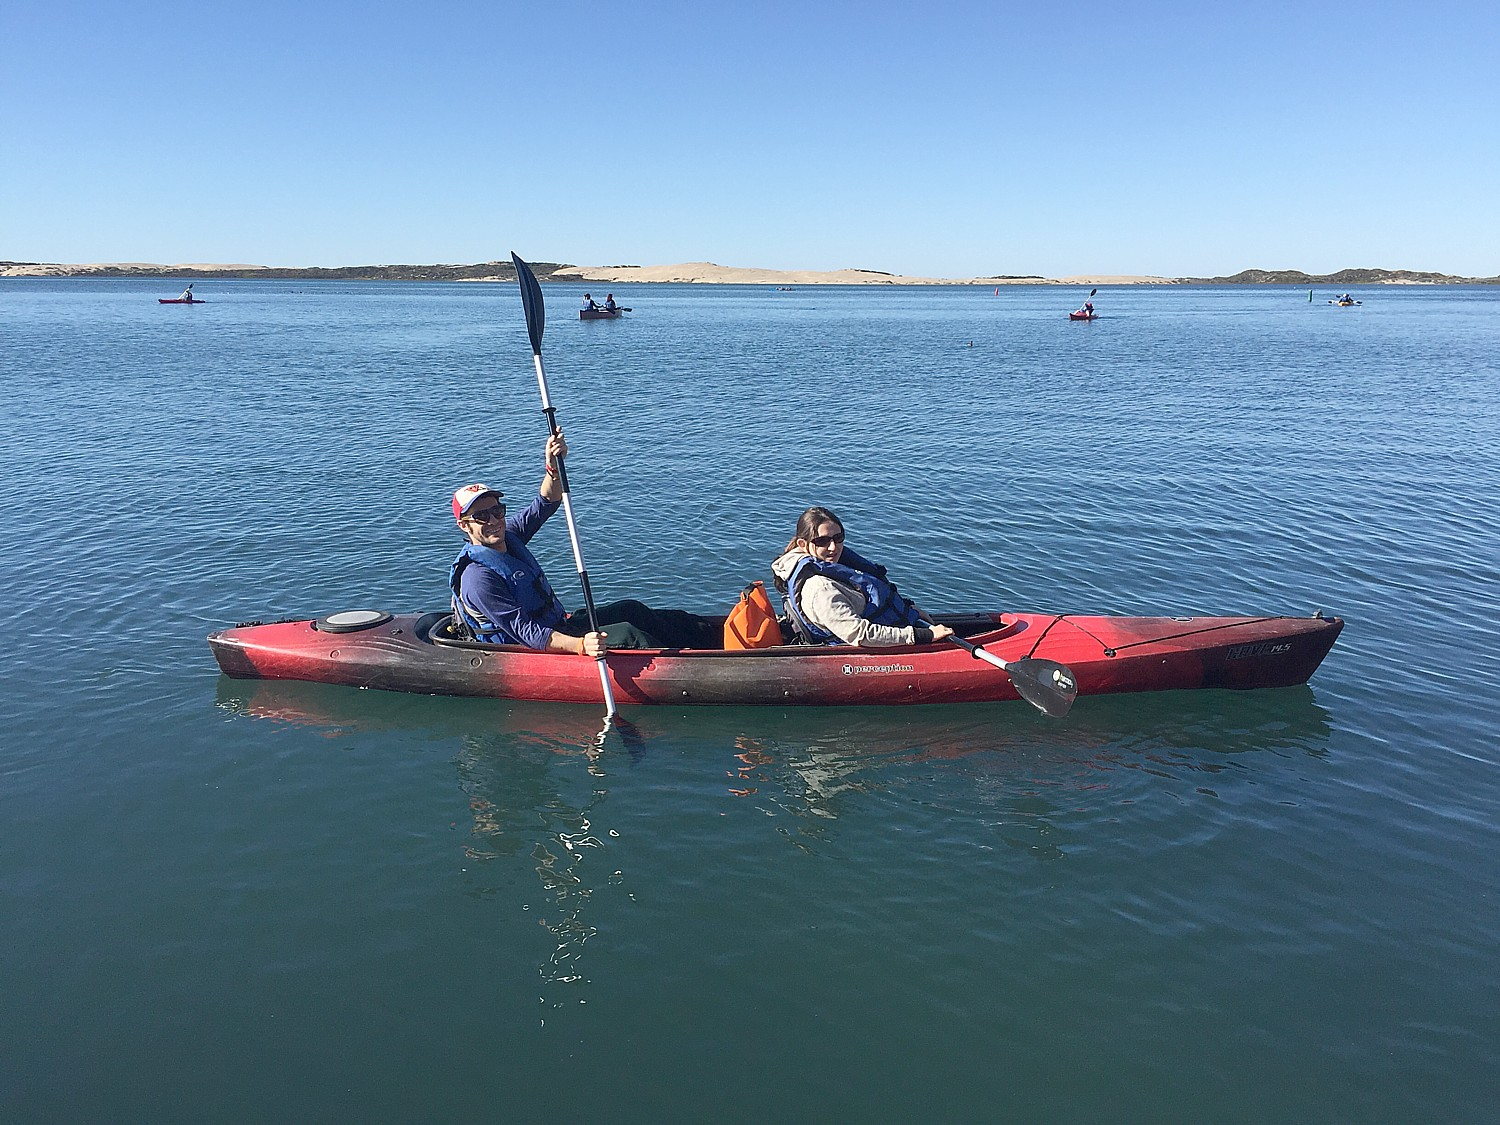 Kayaking in the Morro Bay National Estuary Preserve. Winter is birding season in the California coastal town on the Pacific Flyway, when more than 200 species can be sighted (photo by Dave E. Leiberman).